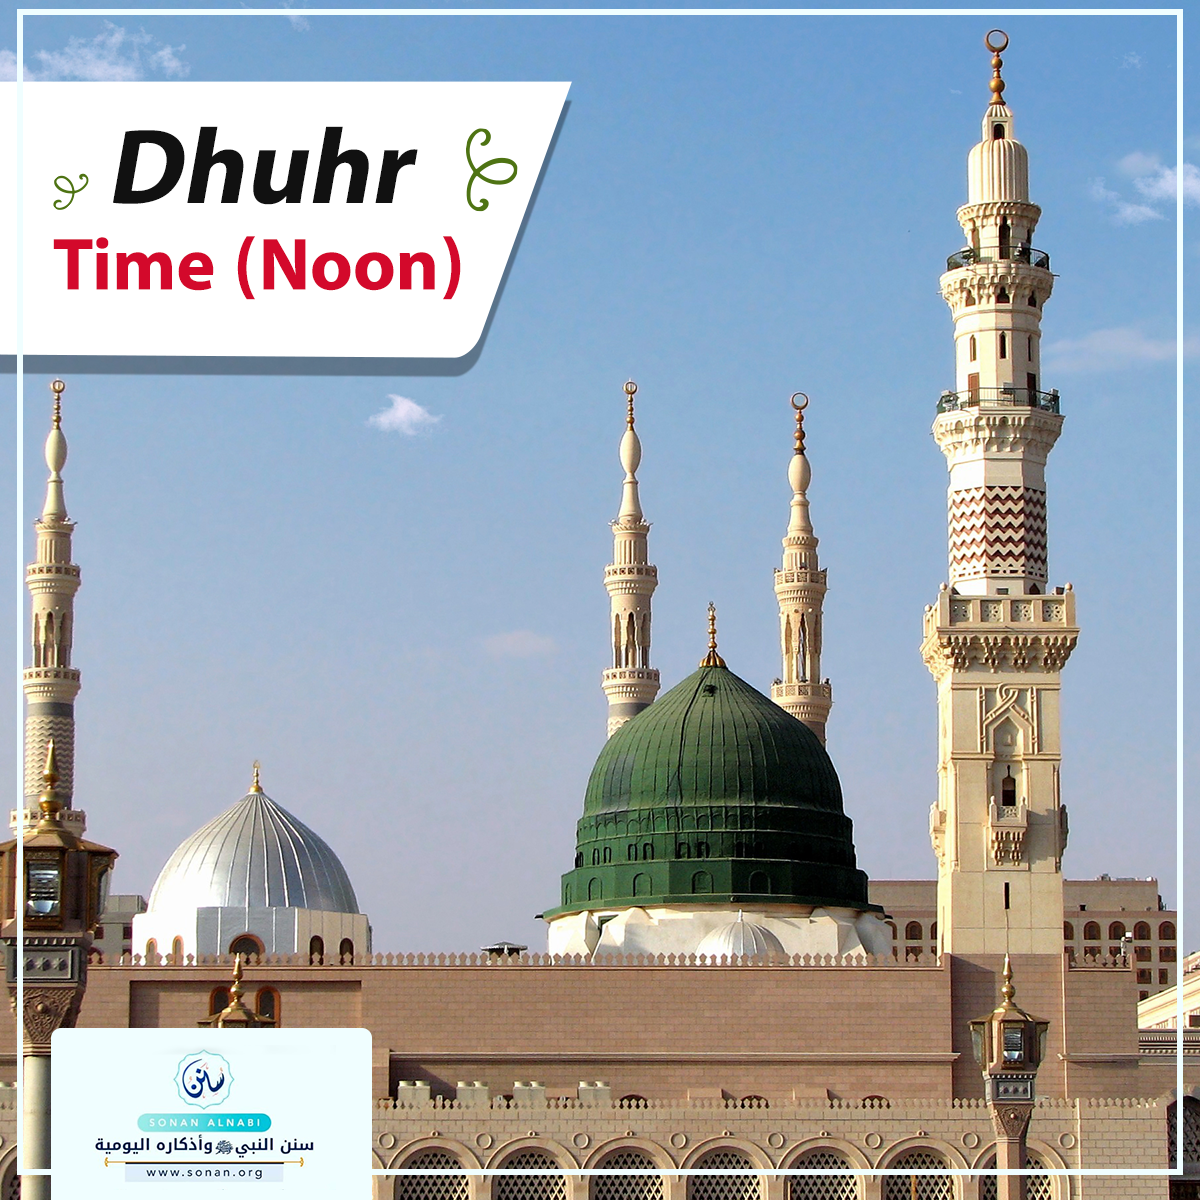 Dhuhr Time (Noon)